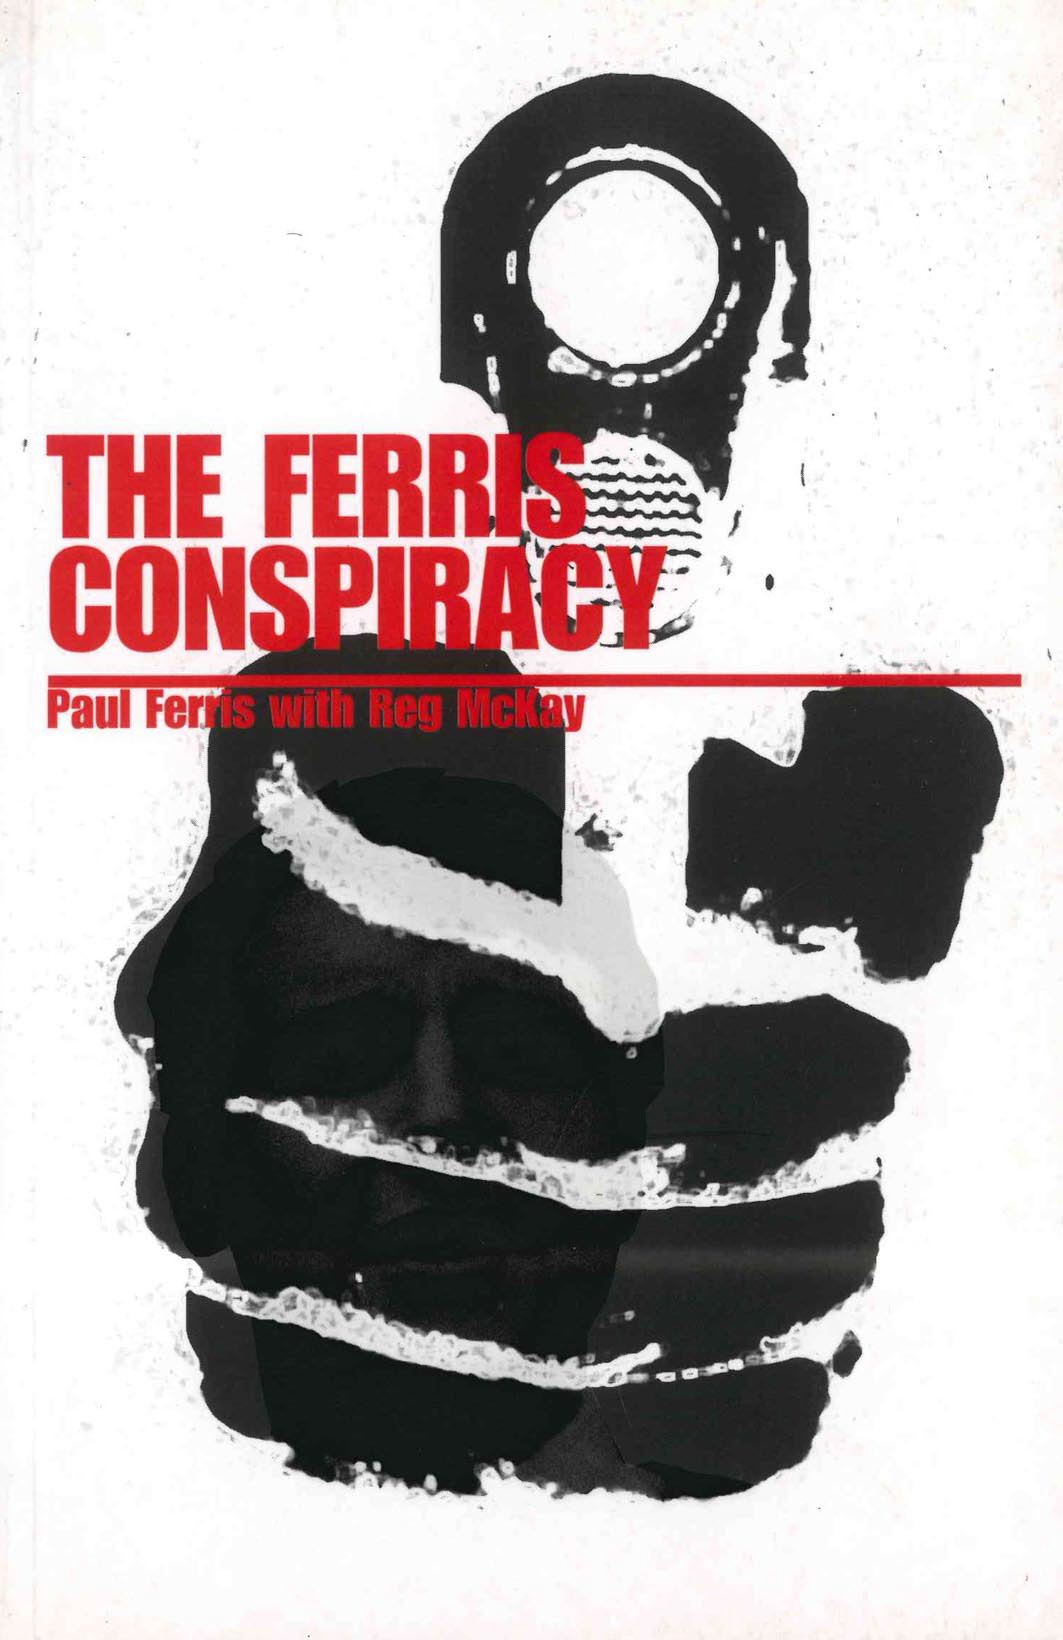 The Ferris Conspiracy